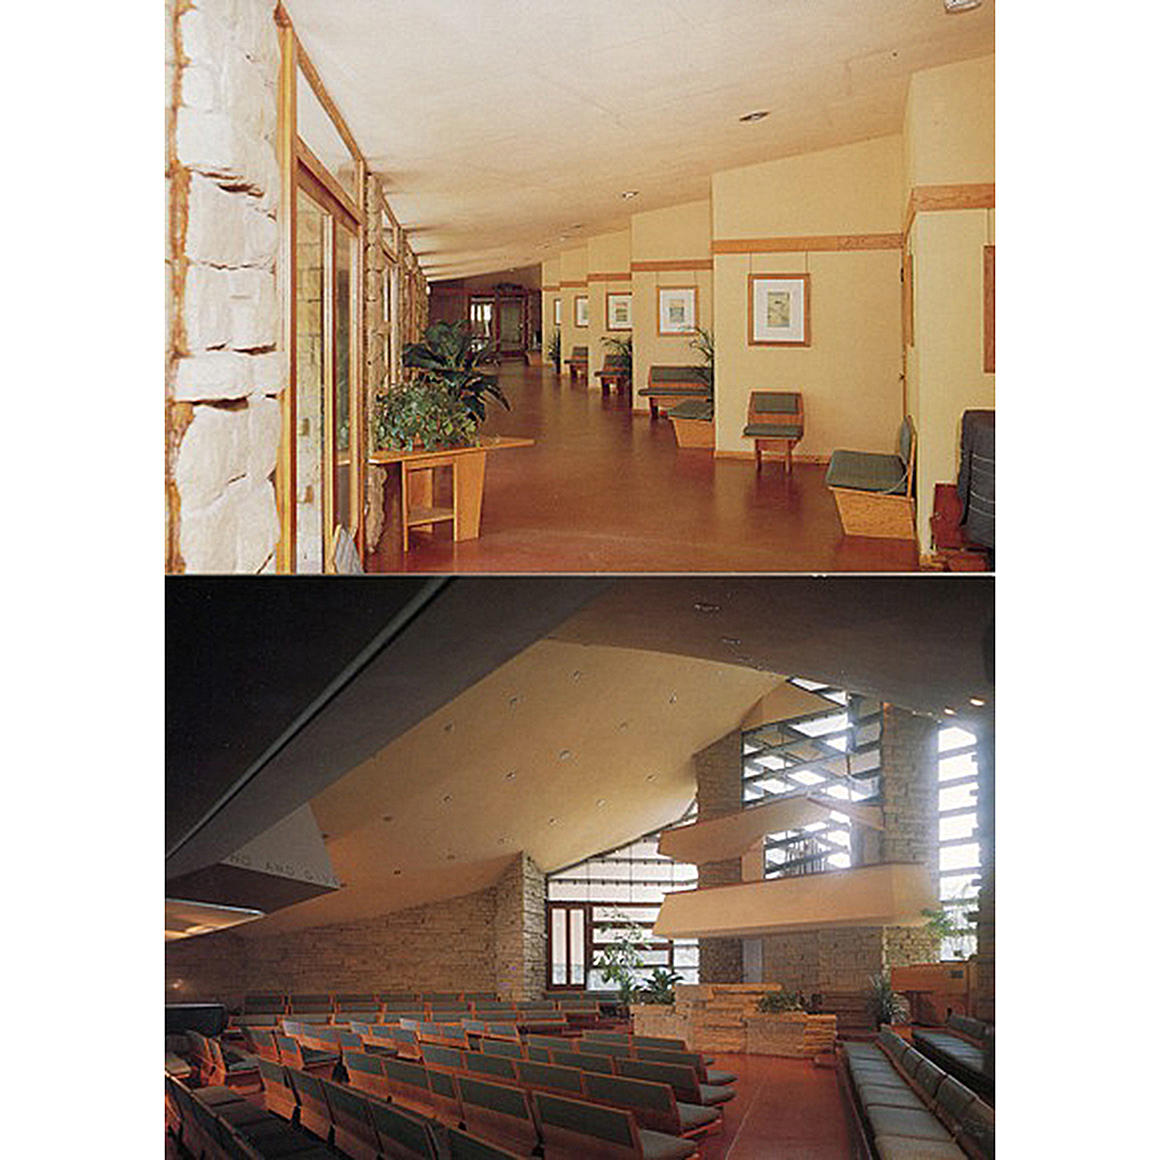 Frank Lloyd Wright Benches and Table from Wright's 1951 Unitarian Church